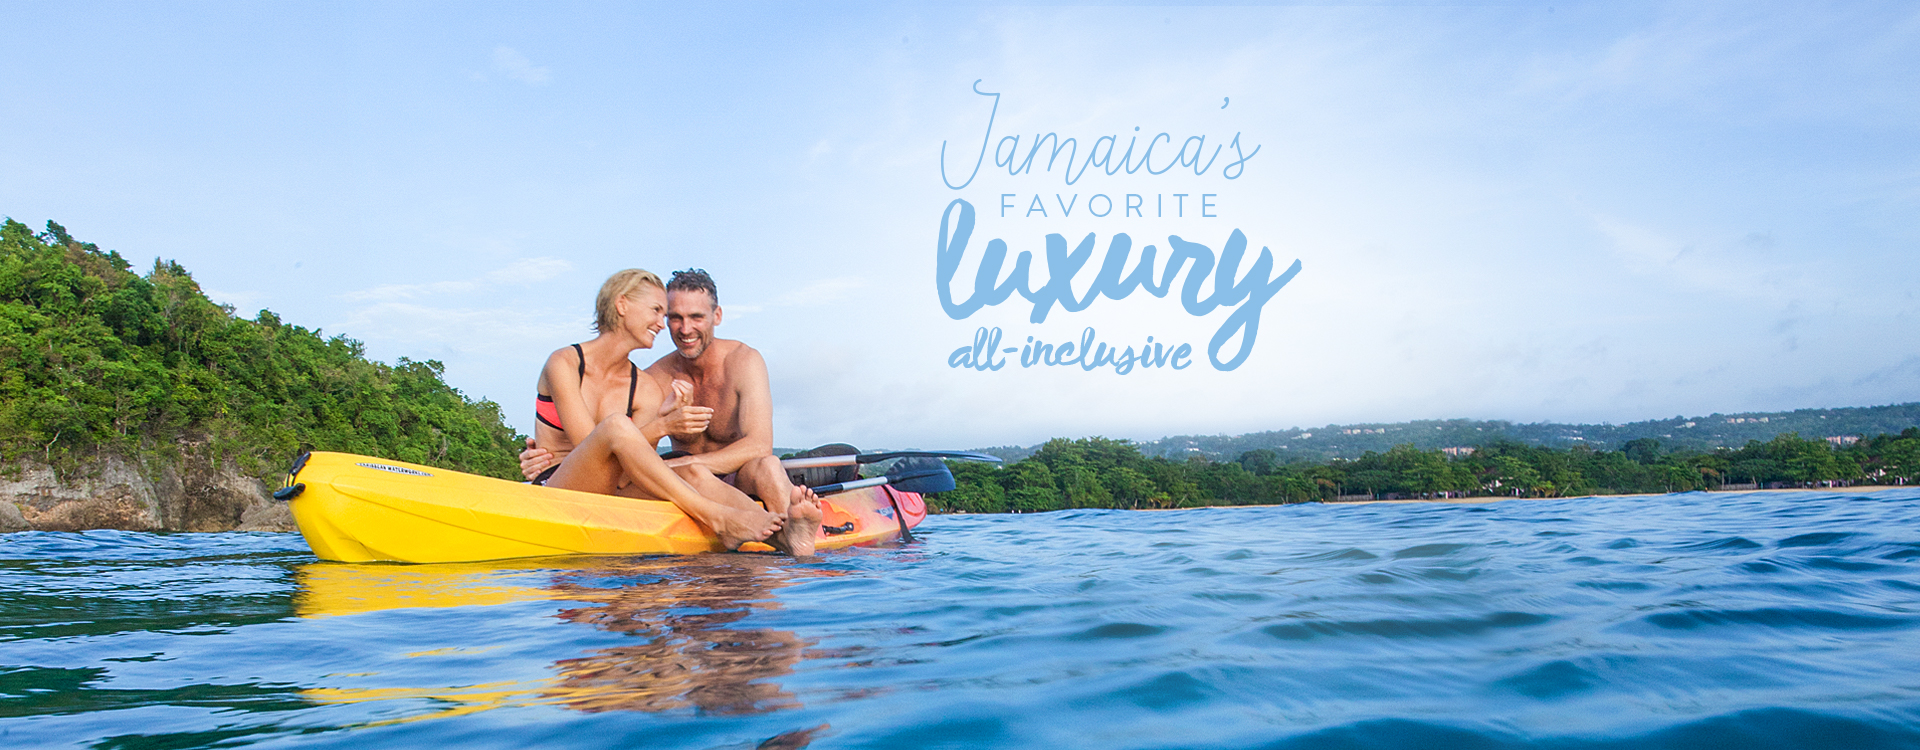 3-Couples_Main-All-Inclusive-Jamaica copy-56d6fabbae131.jpg